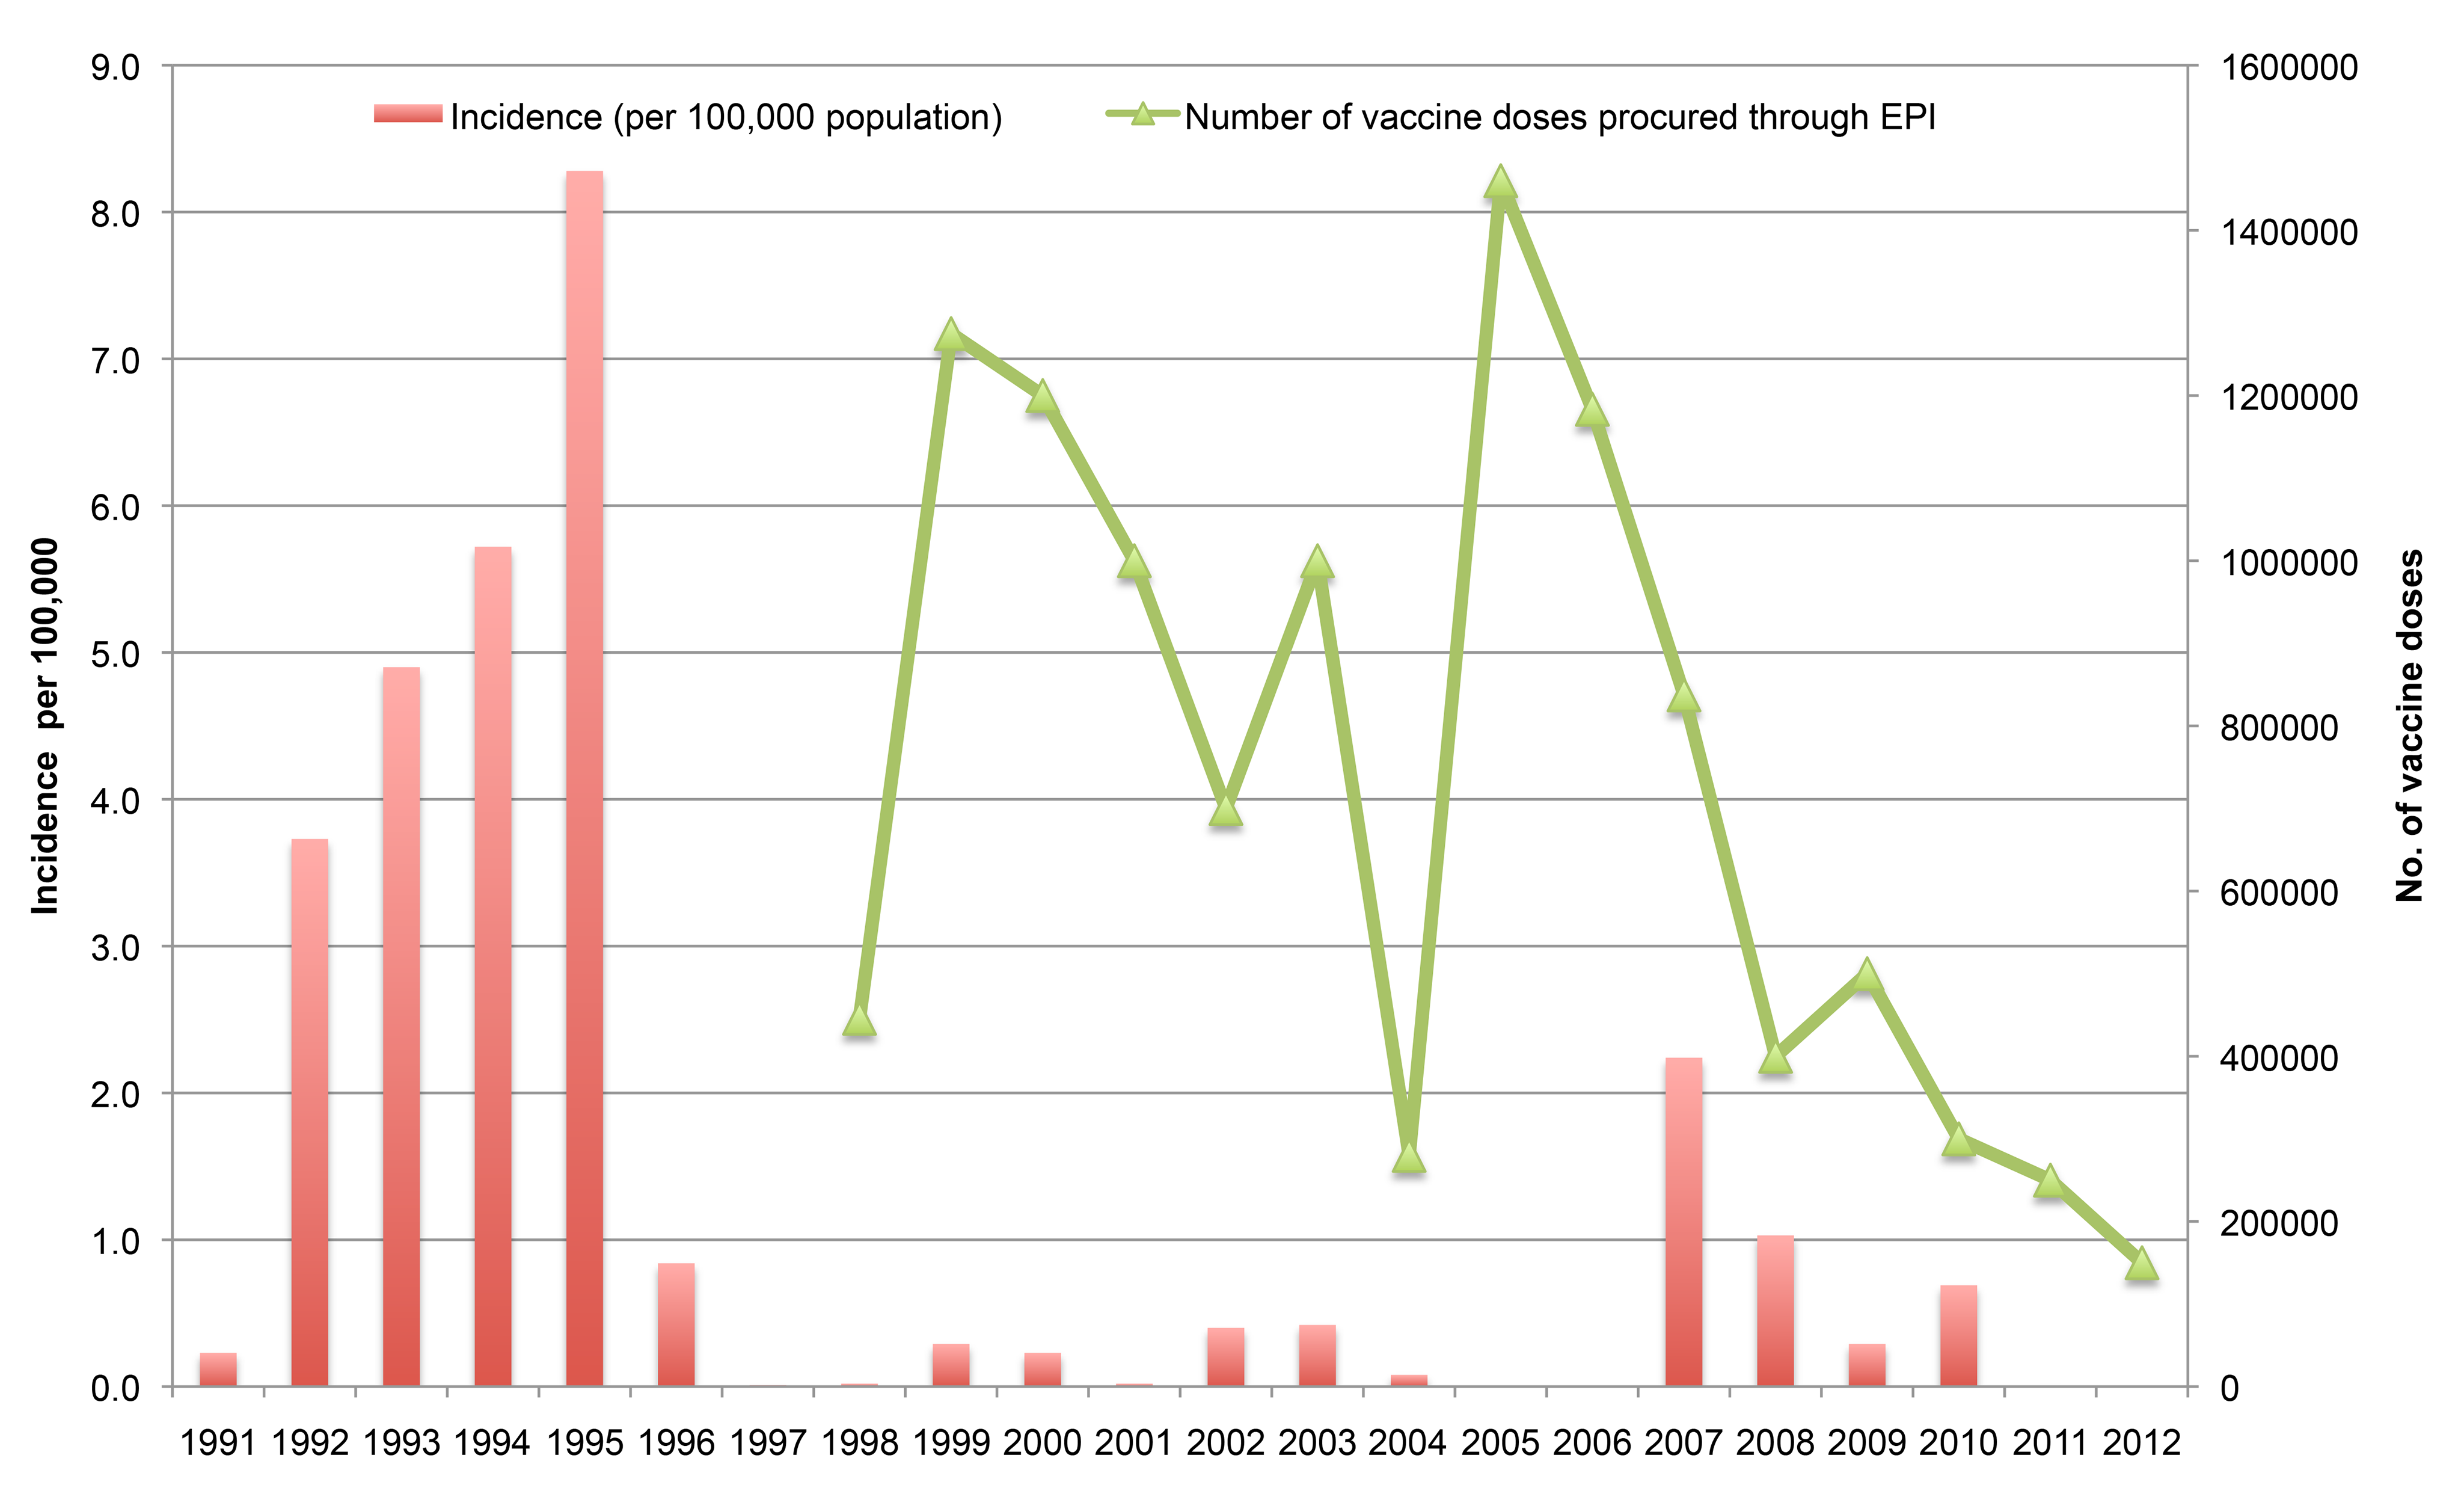 Incidence of cholera in Vietnam and number of vaccine doses procured through the National Expanded Programme on Immunization, 1998–2012.